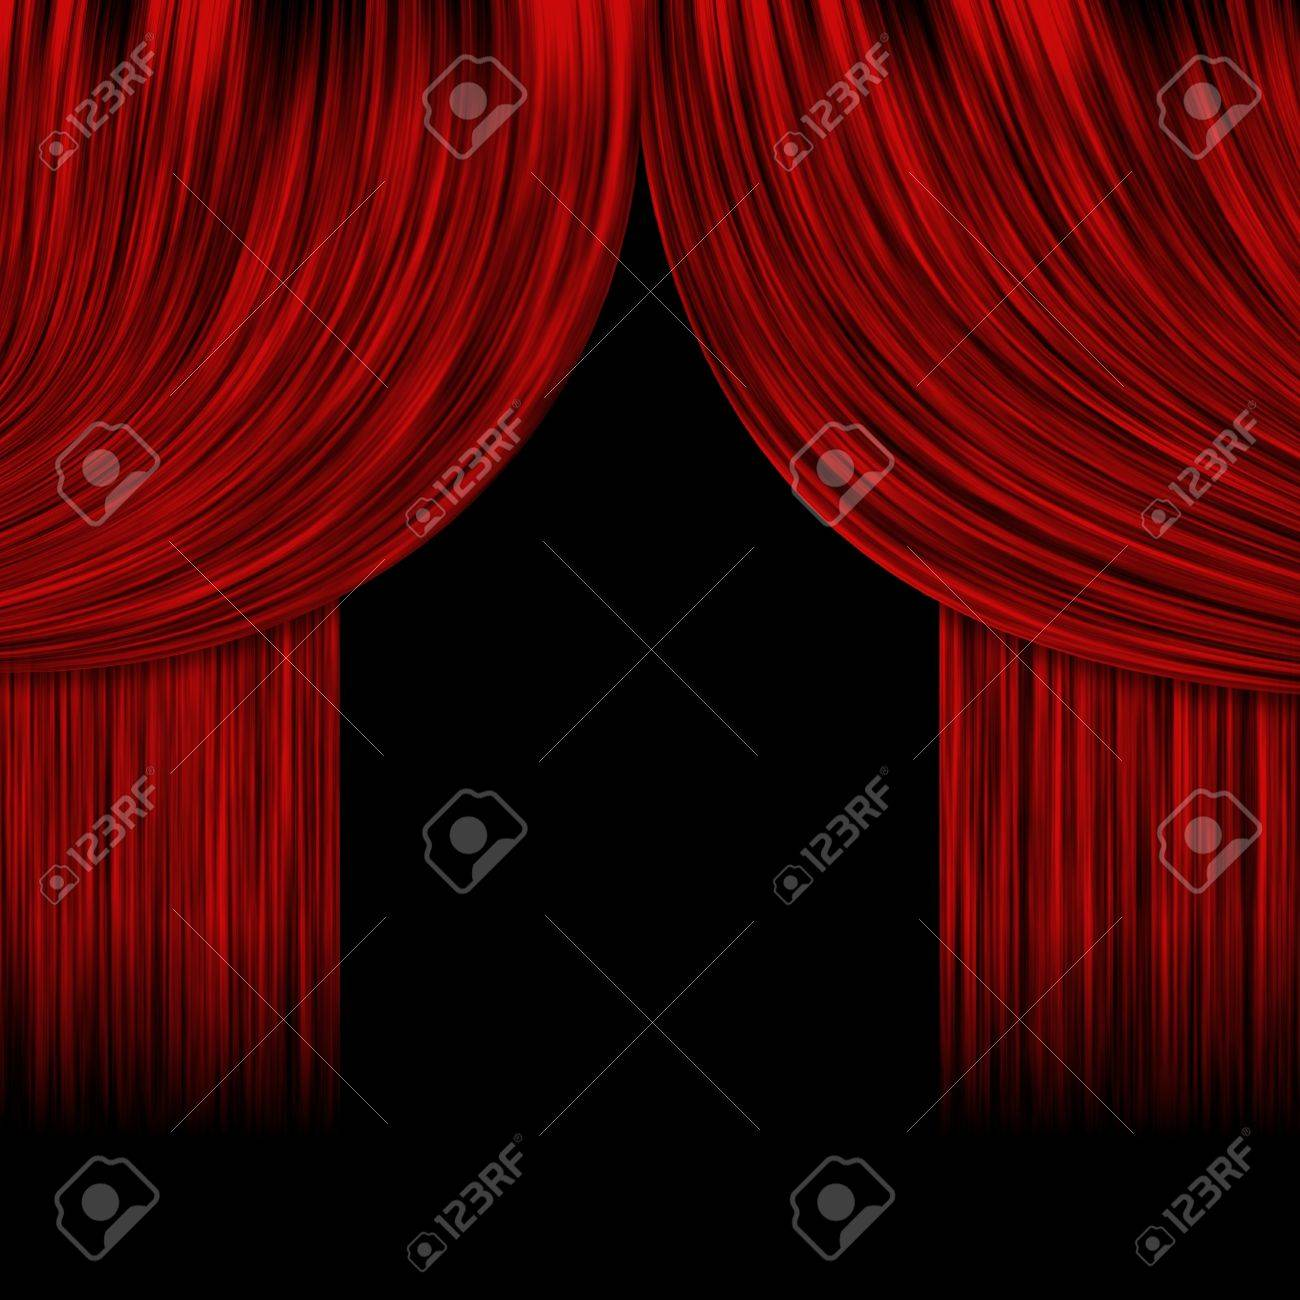 Black stage curtains black stage curtain - Illustration Of Open Theater Drapes Or Stage Curtains With A Black Background Stock Illustration